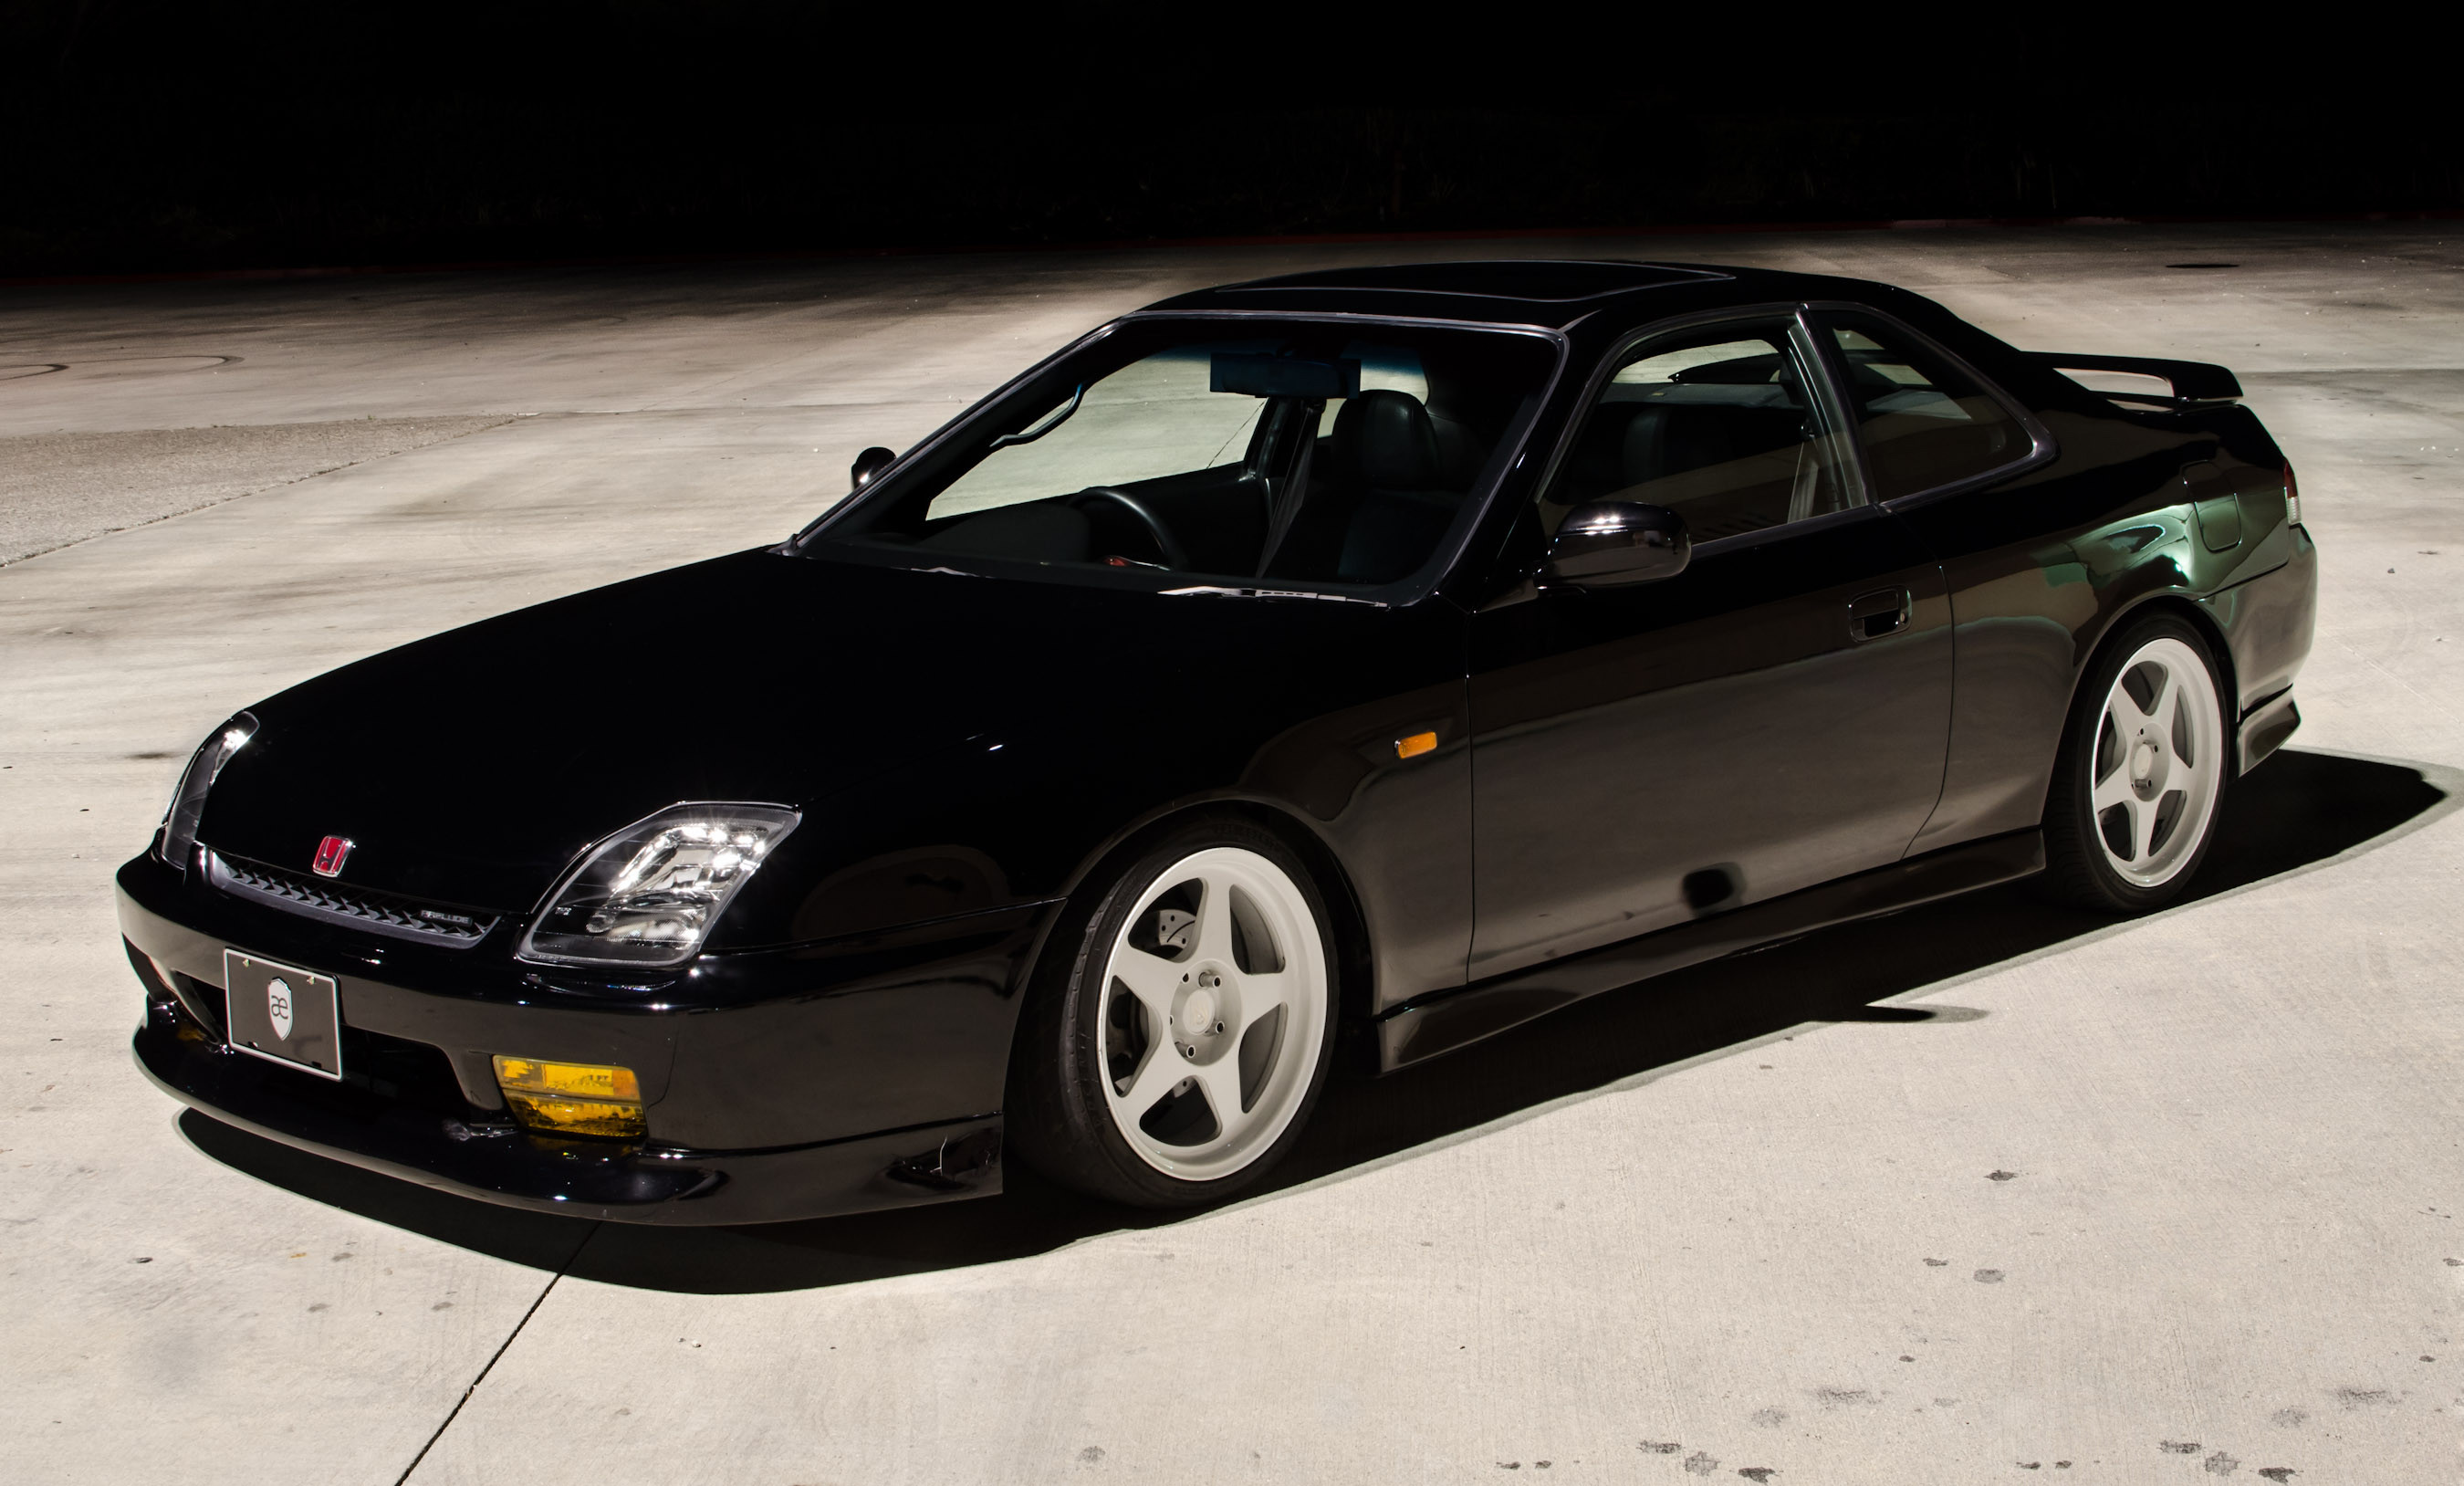 2700x1628 ... Official: My Prelude Wallpaper Thread. - Honda Prelude Forum .